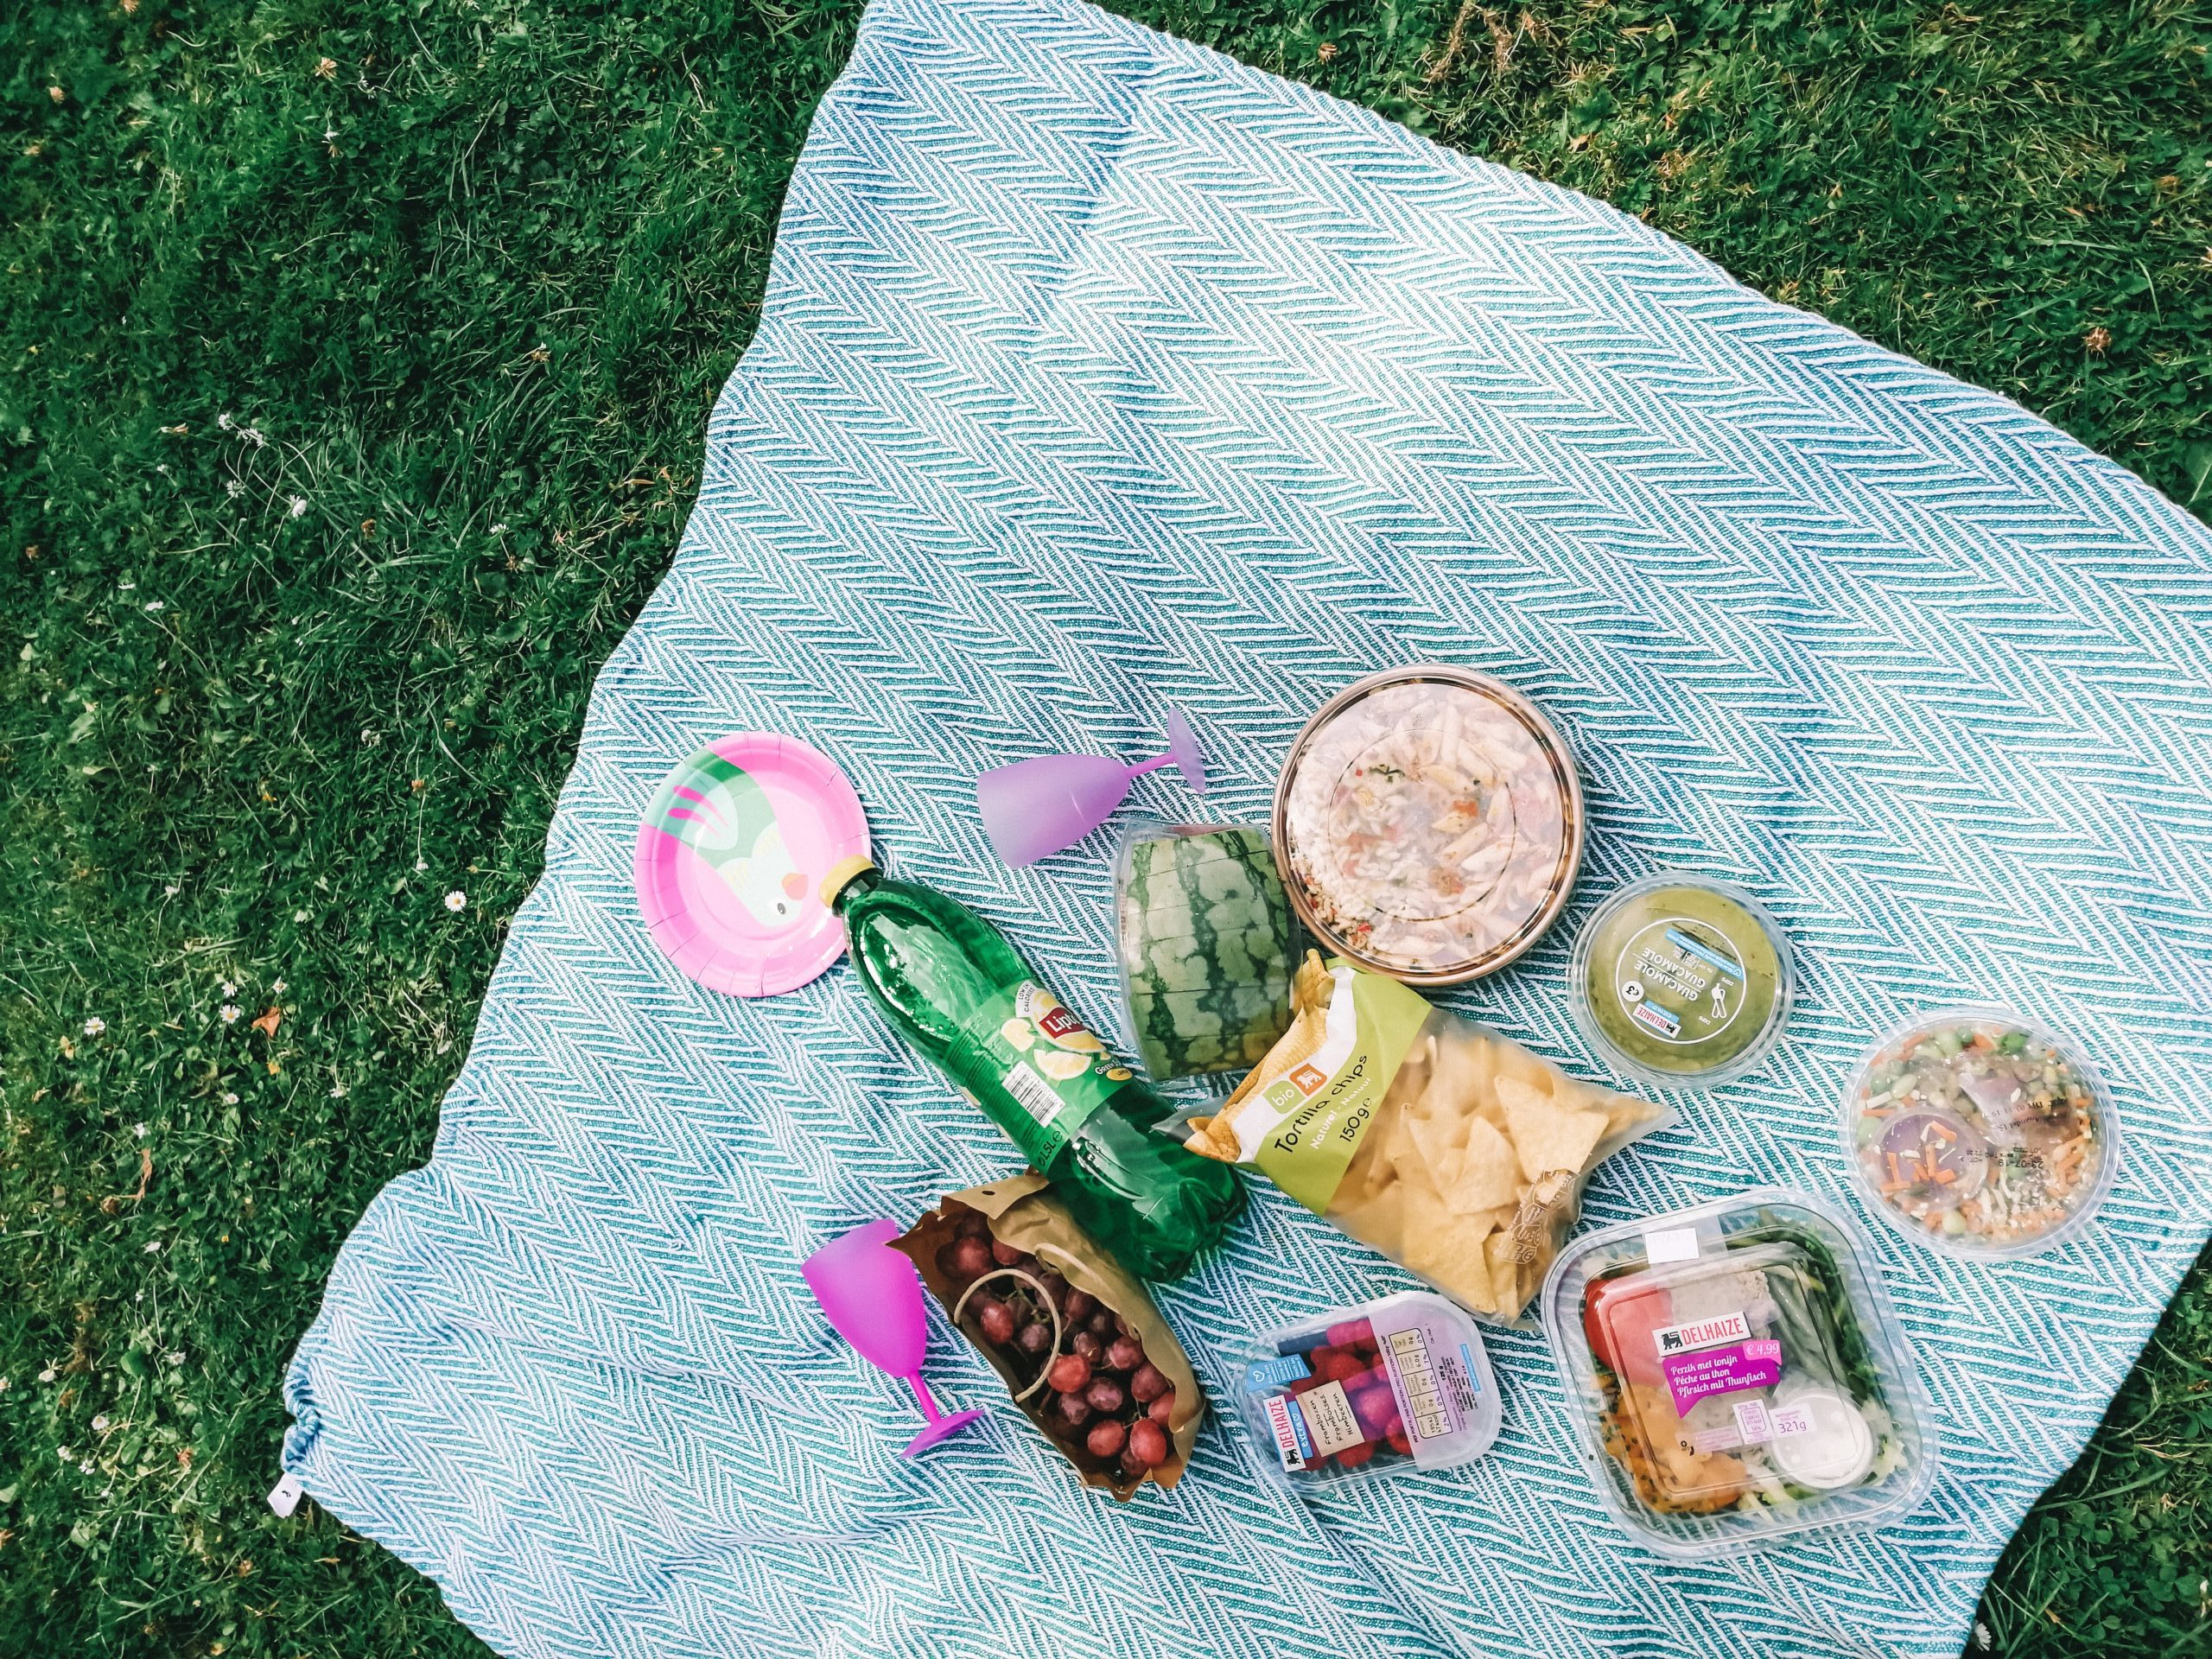 Staycation Picknick